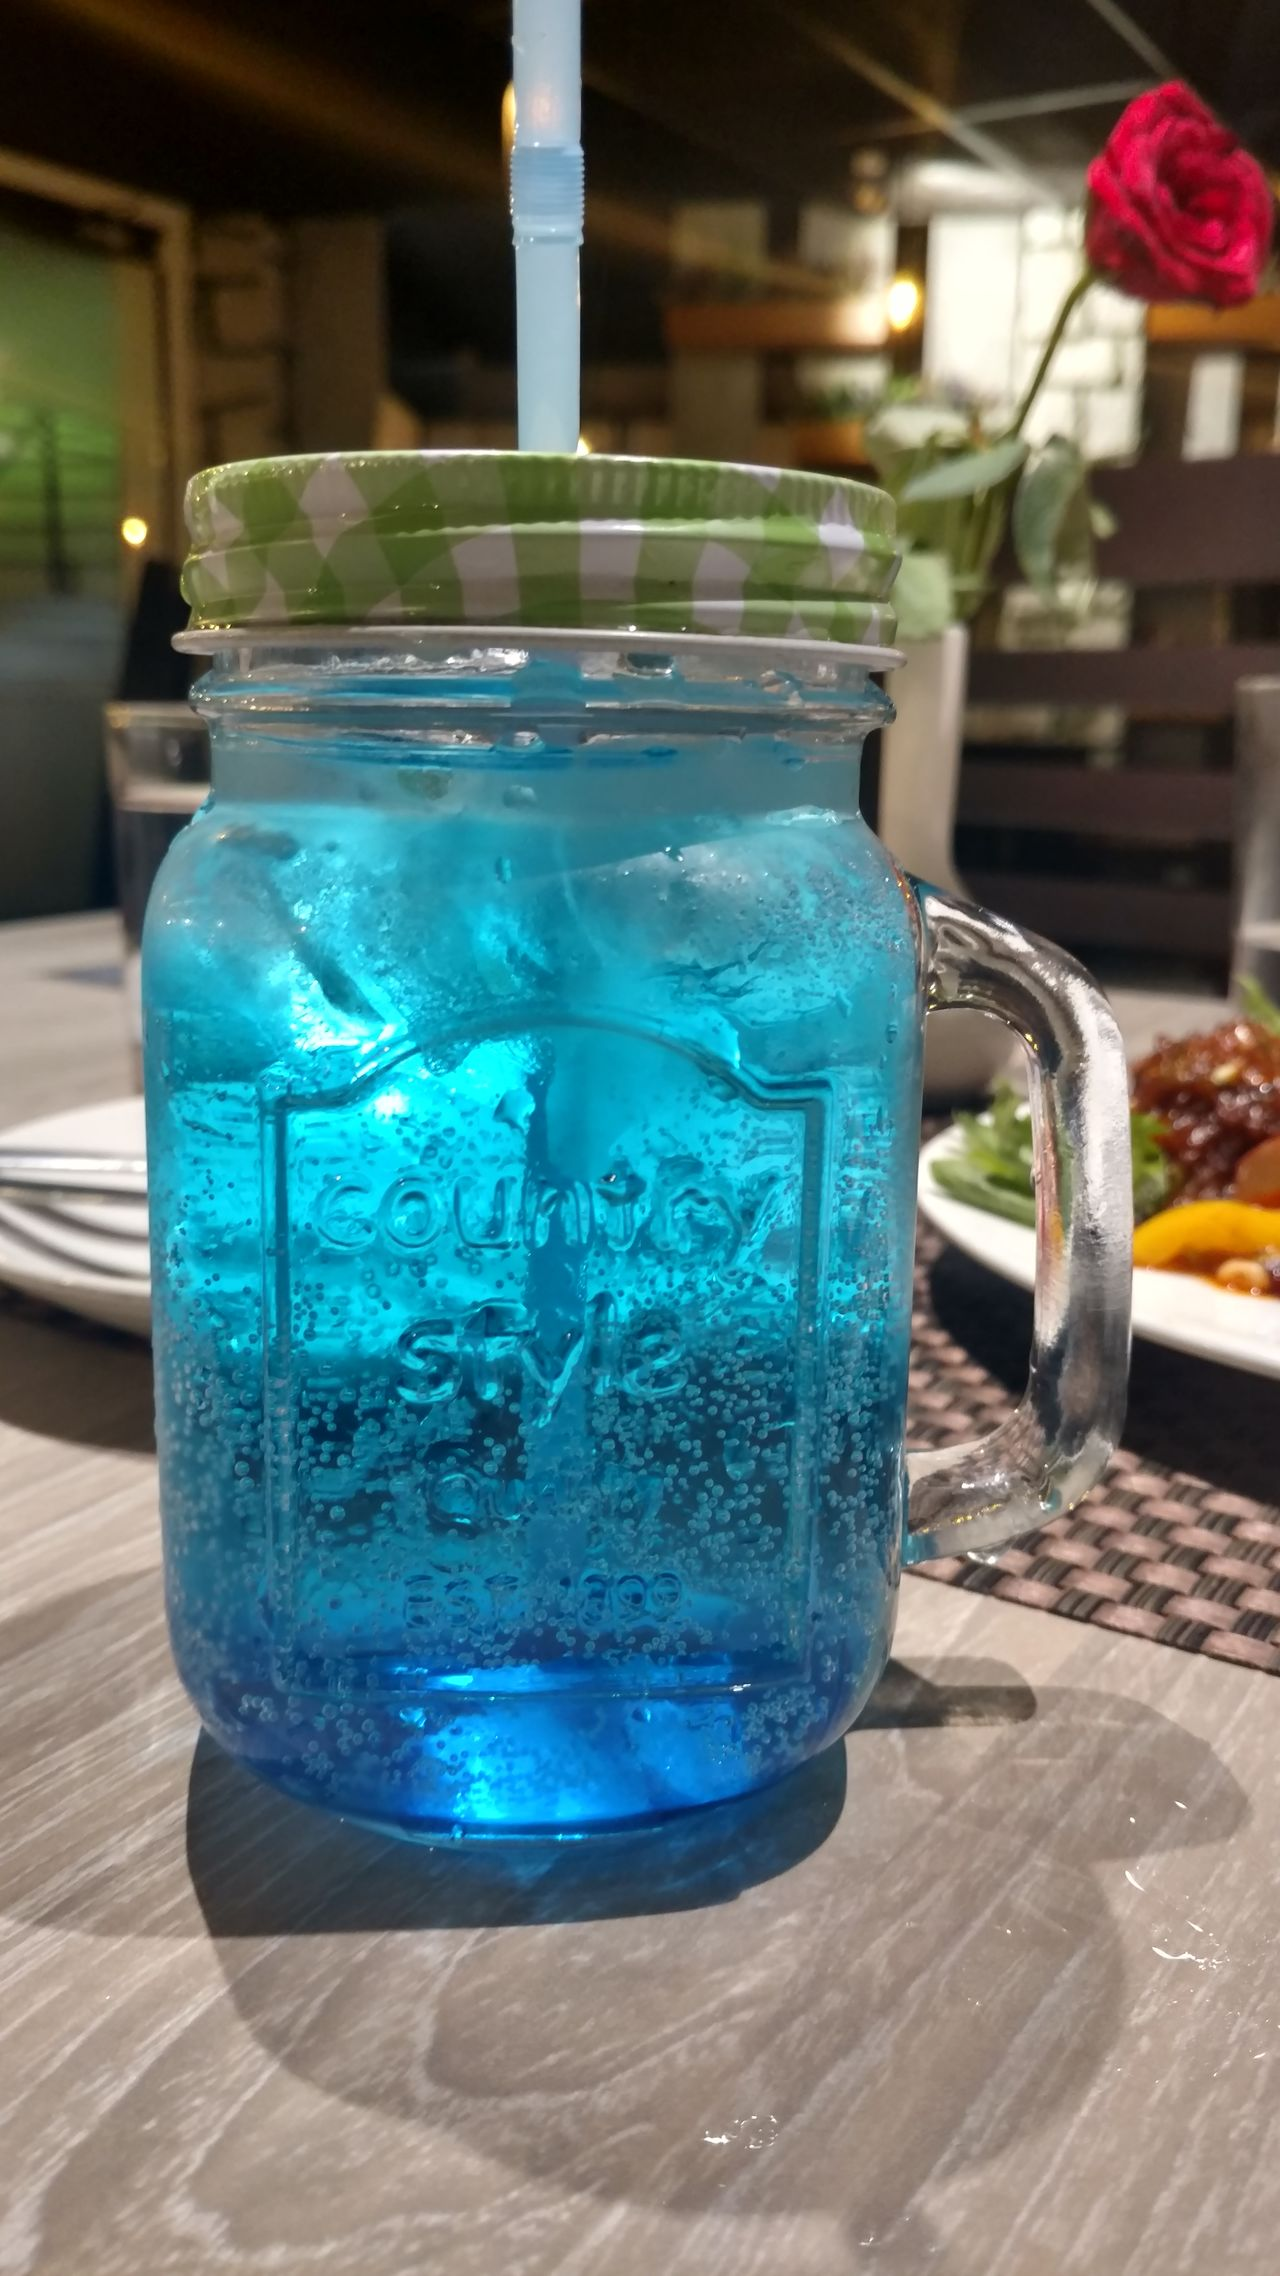 EyeEmNewHere bluelime Drink Refreshment Table Jar Food And Drink Blue Freshness Close-up Indoors  Day With Friends <3 With Friends Limejuice BLUE LIME Lime Evening Blue Water Pure Natural Freshness Hotel Food And Drink NoEdits  Indoors